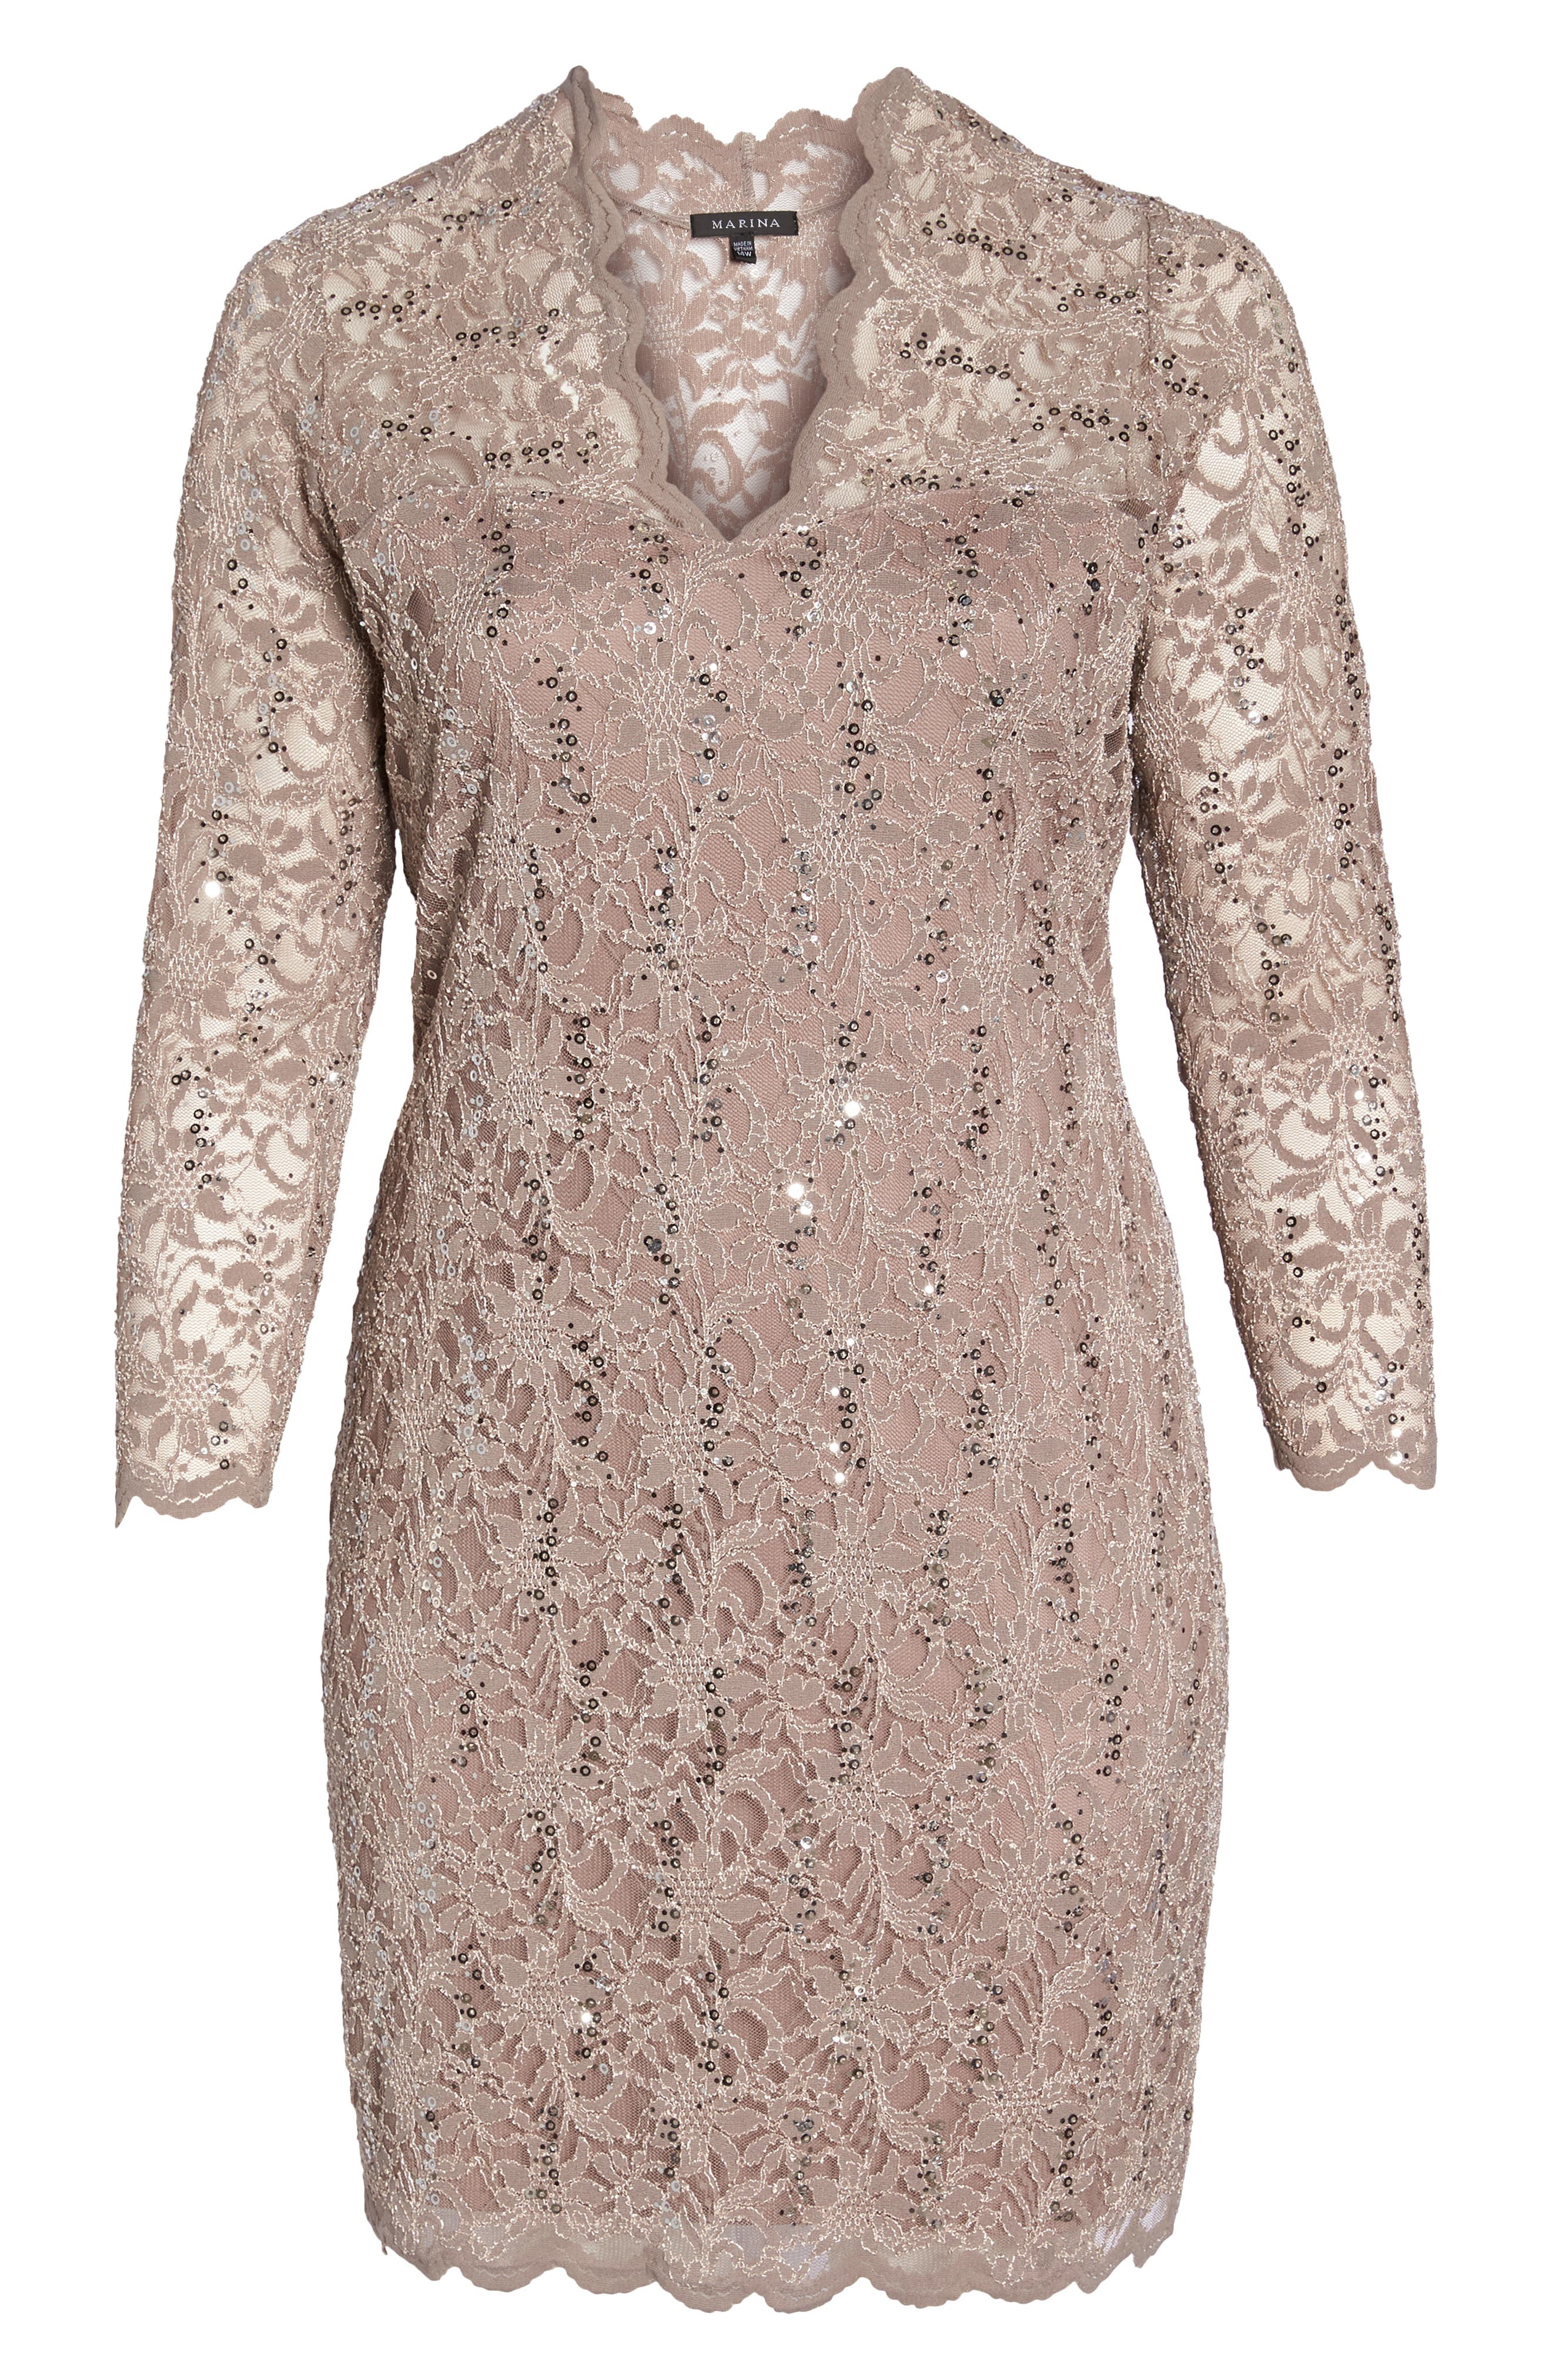 Sequin Stretch Lace Sheath Dress,                             Main thumbnail 1, color,                             Taupe